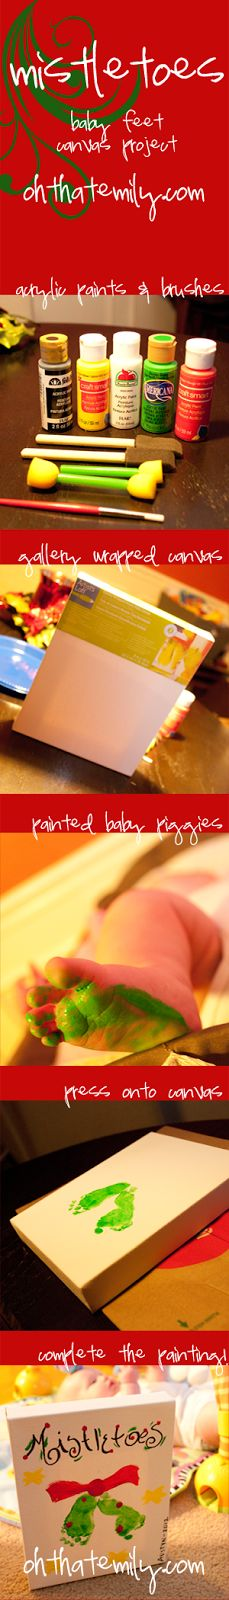 [OHthatEMILY]: DIY Mistletoes Baby Feet Painting